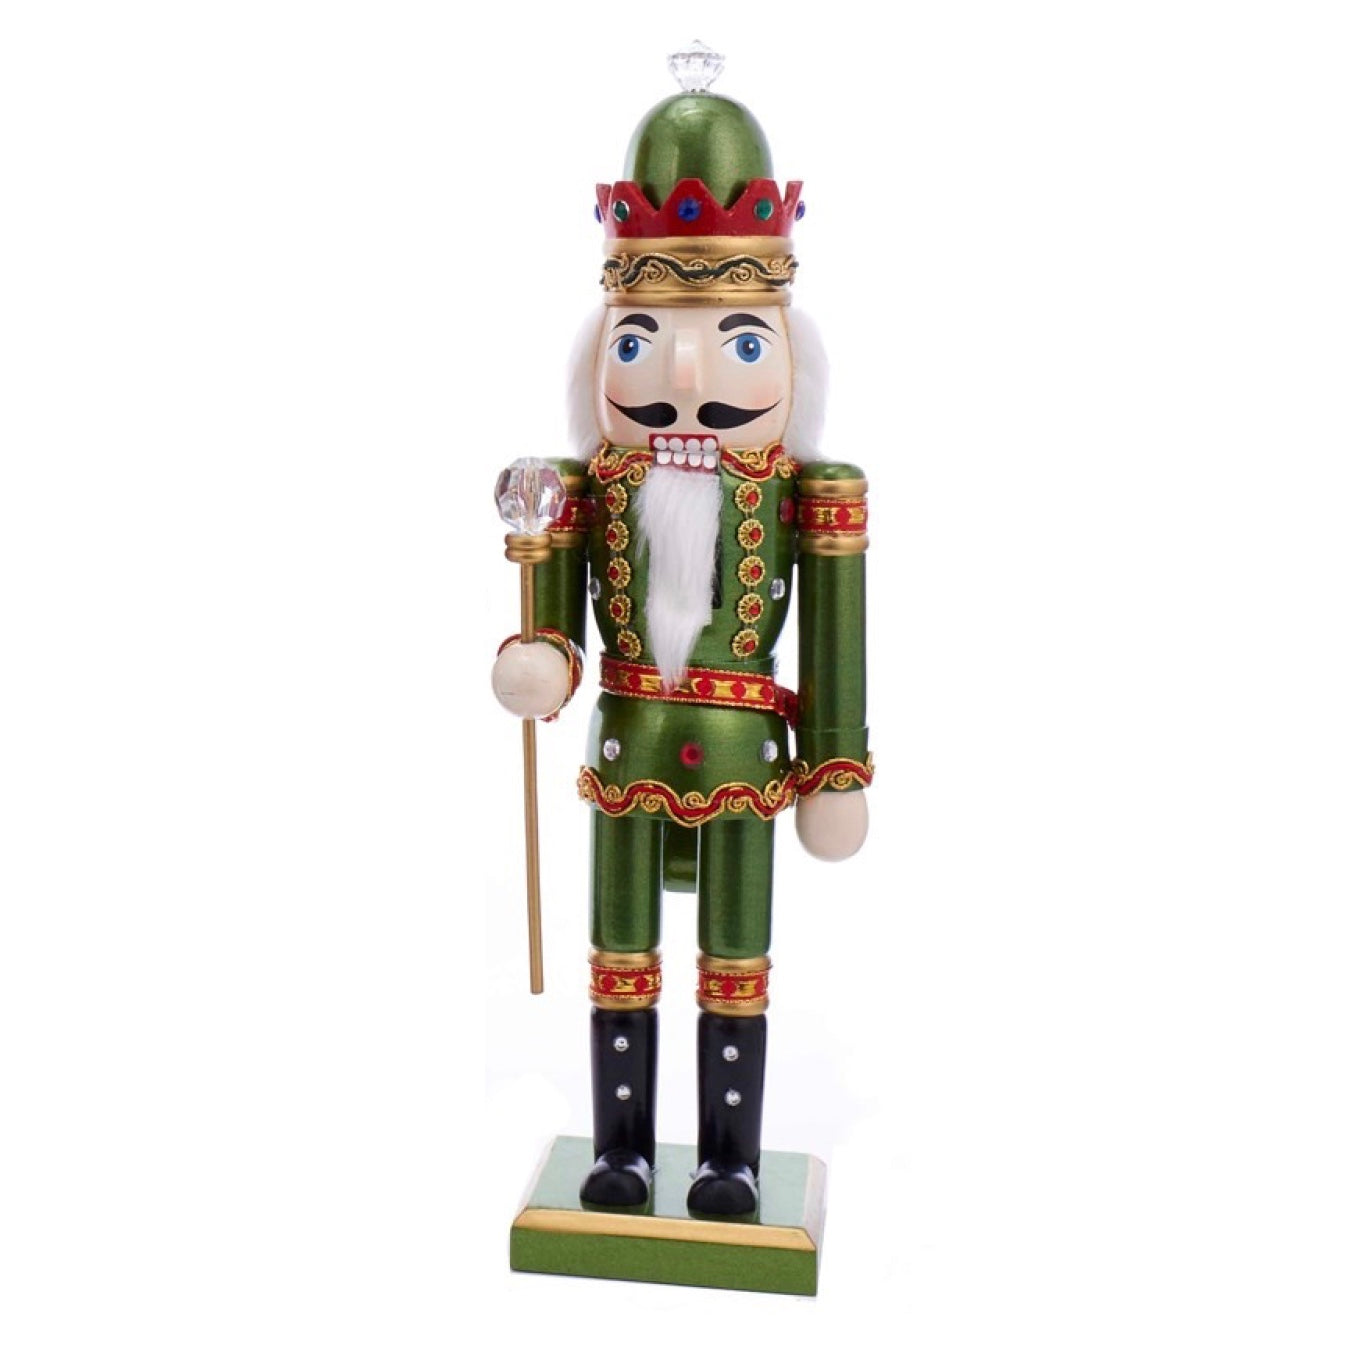 Wooden King Nutcracker - Green